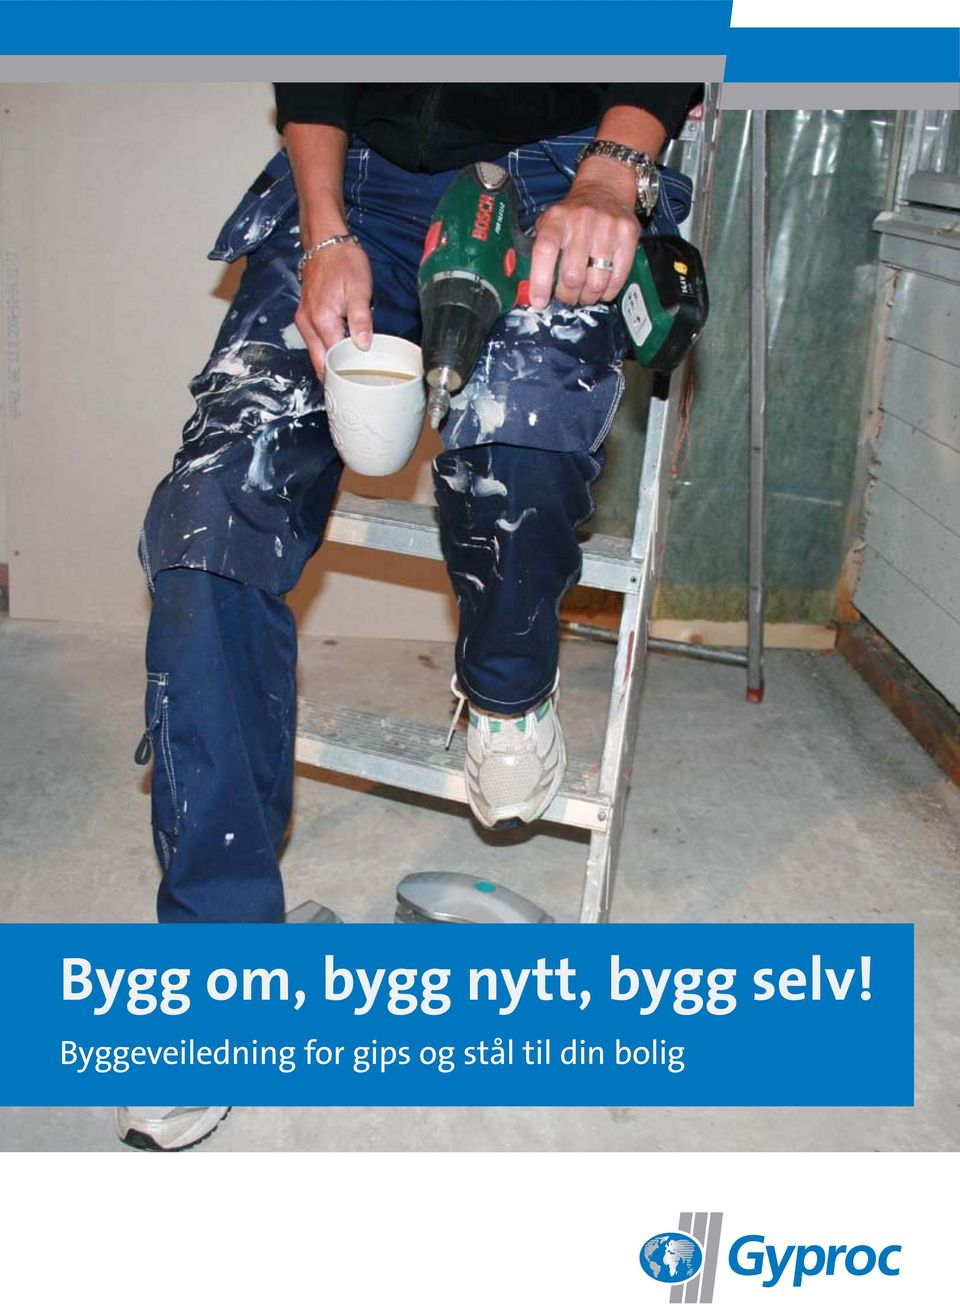 Byggeveiledning for